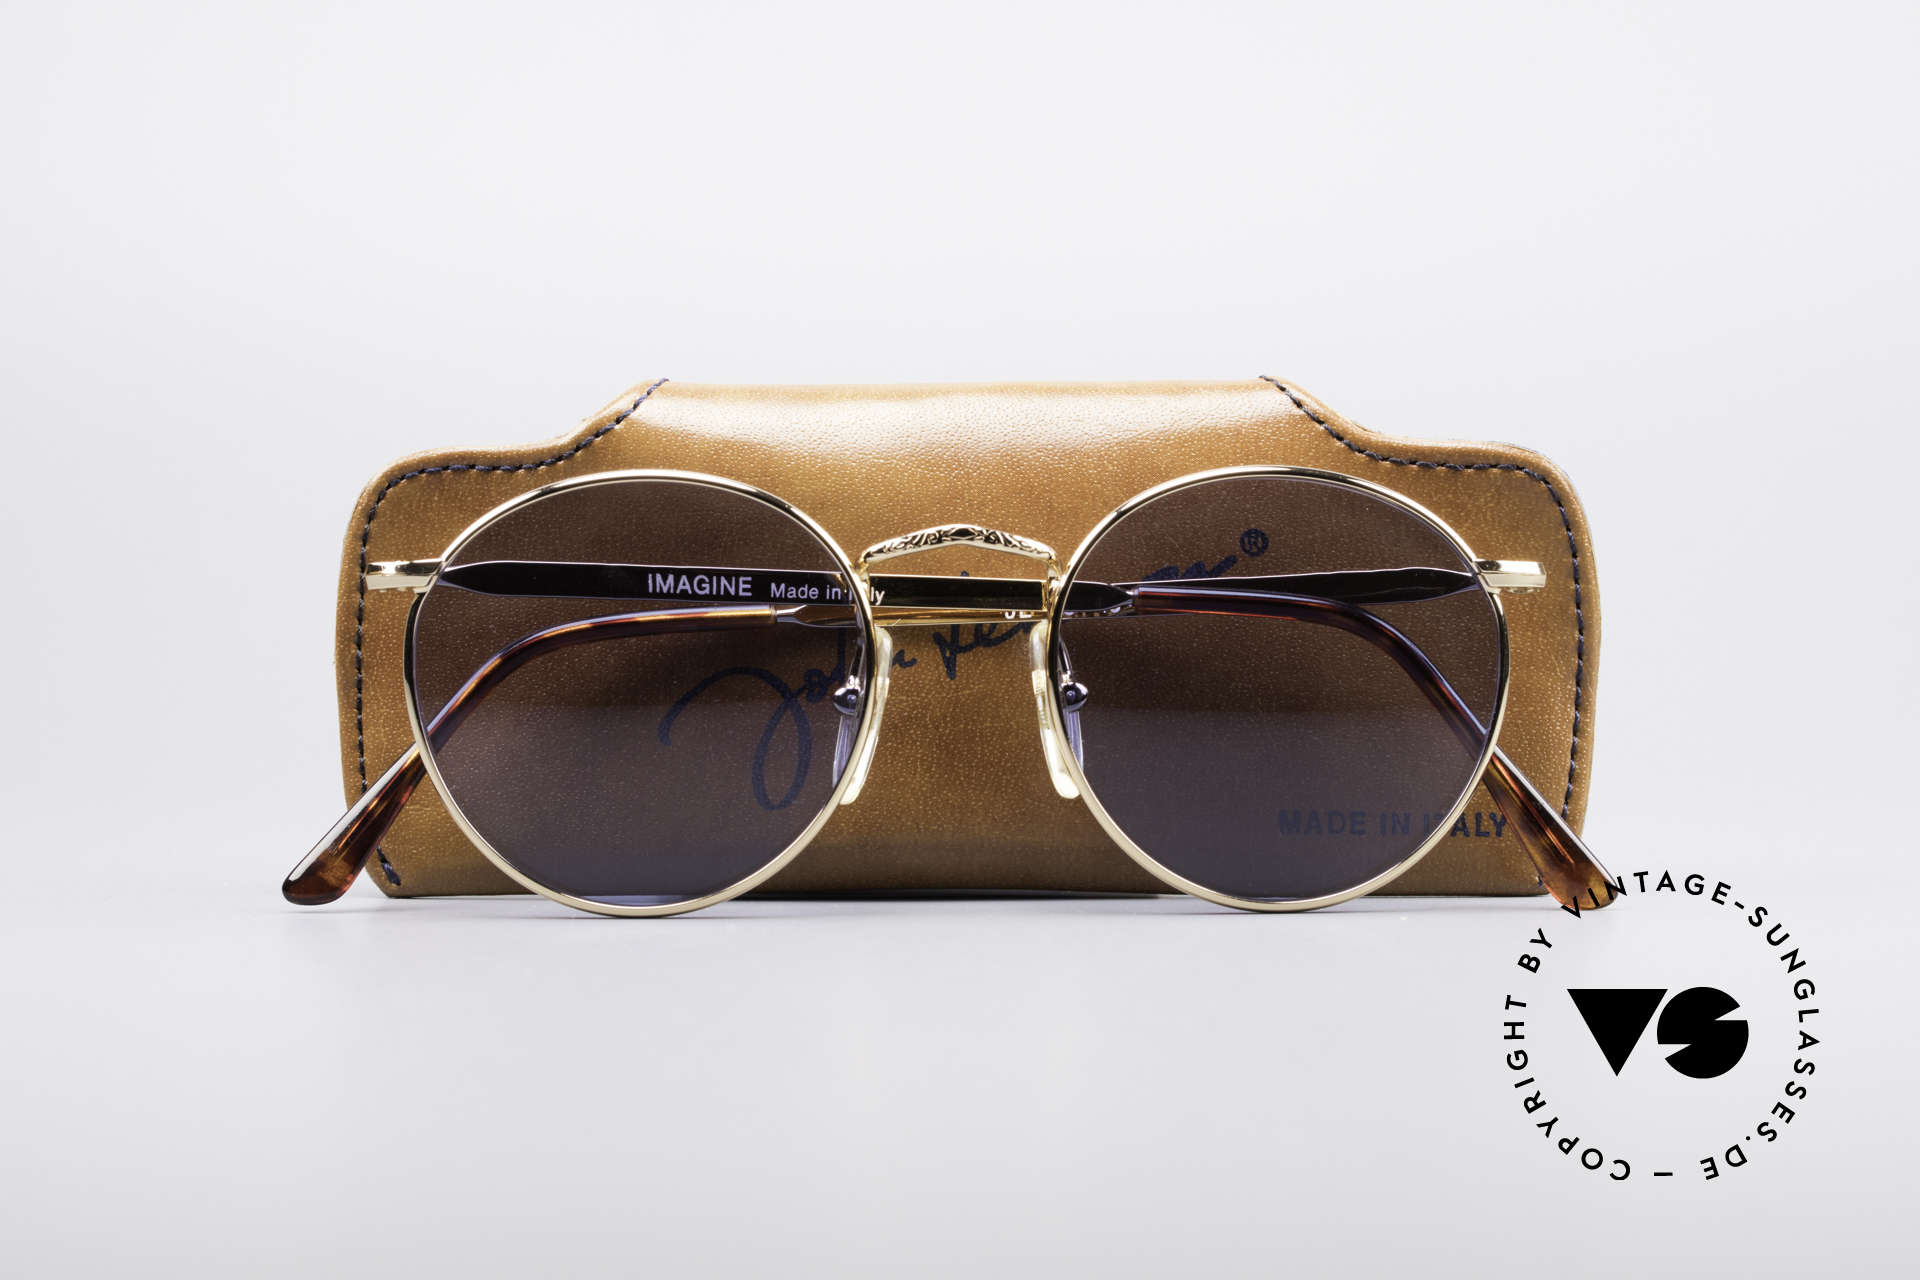 John Lennon - Imagine Original John Lennon Glasses, NO RETRO PANTO SUNGLASSES; but a rare old Original!, Made for Men and Women